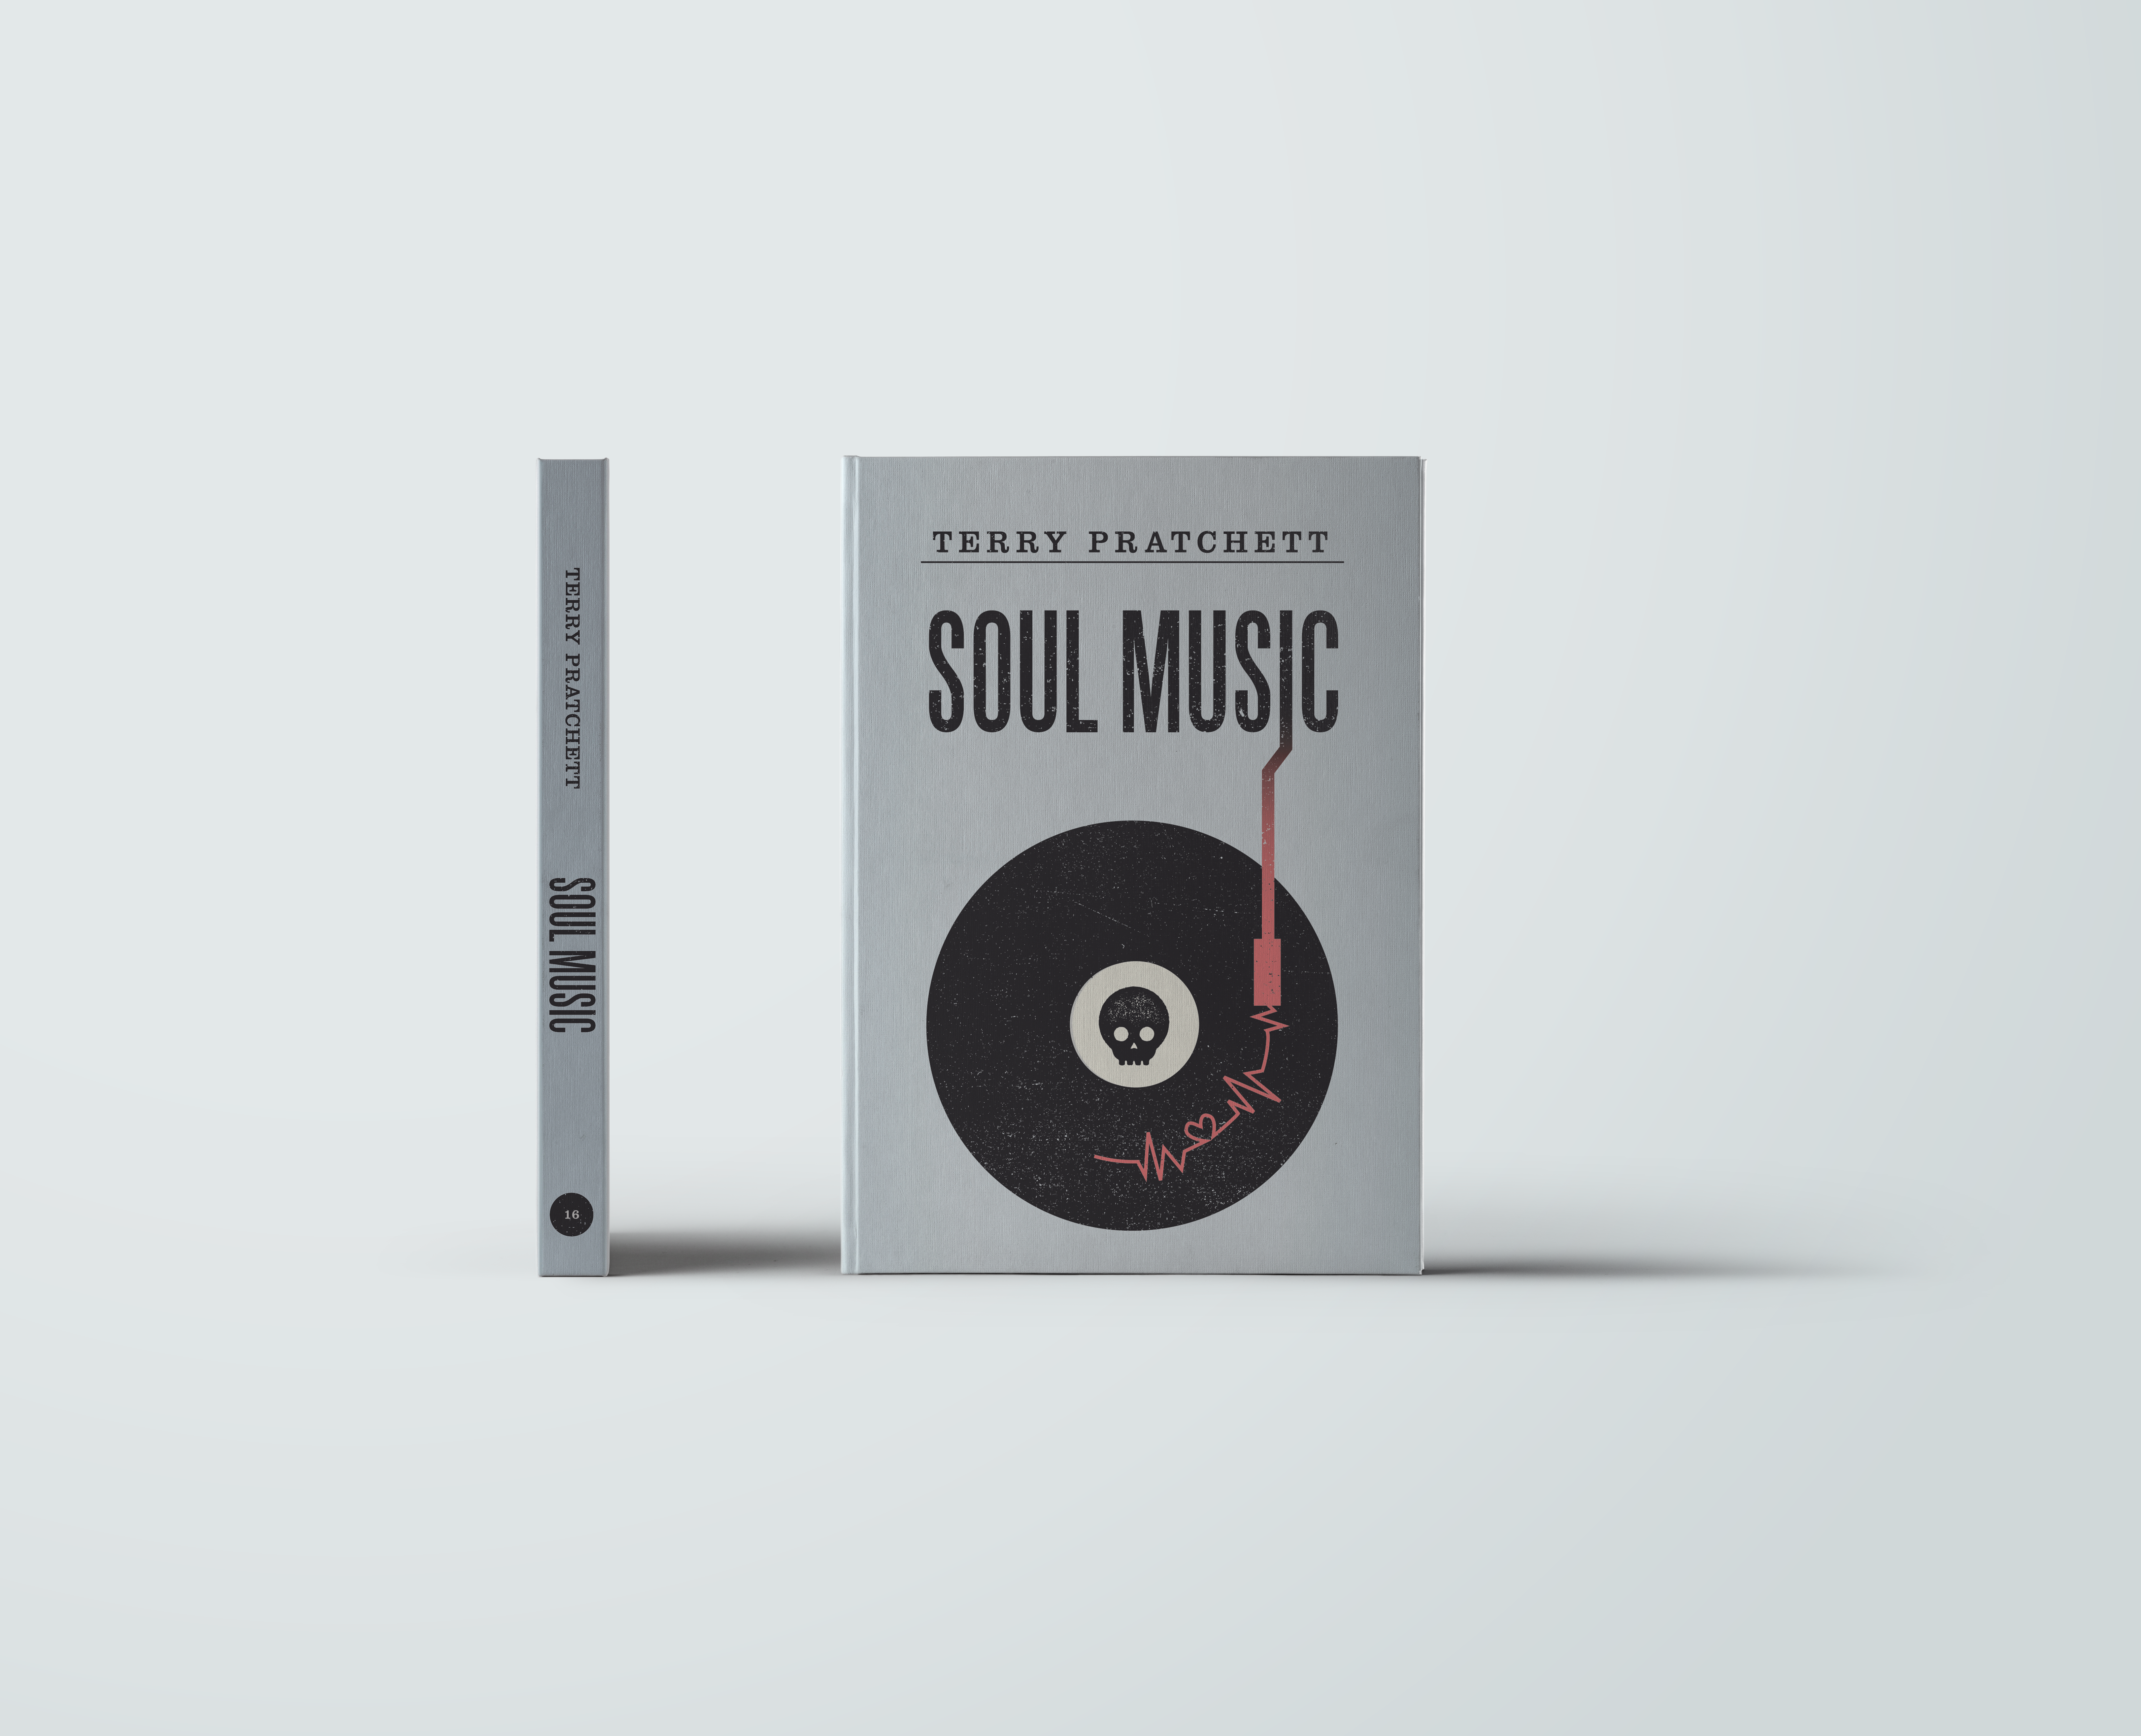 Soul Music by Terry Pratchett, book cover